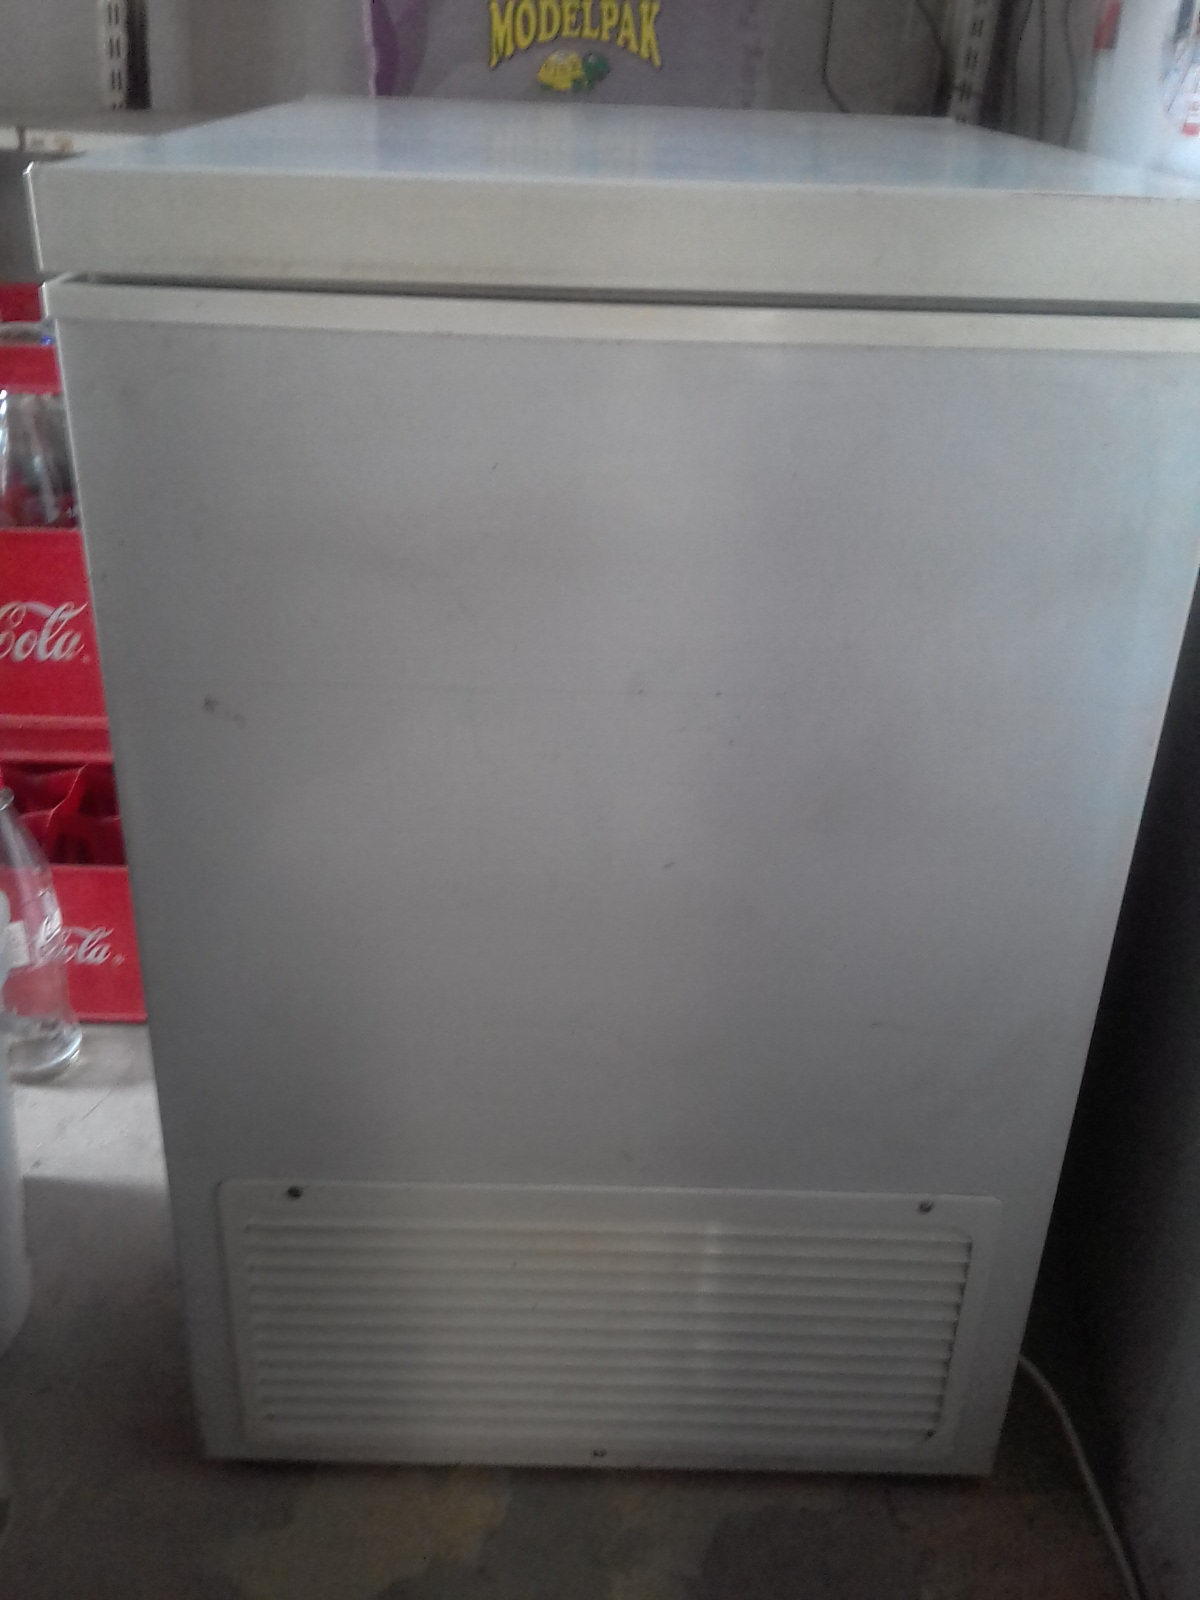 Chest Freezer for sale 210L. Very good condition